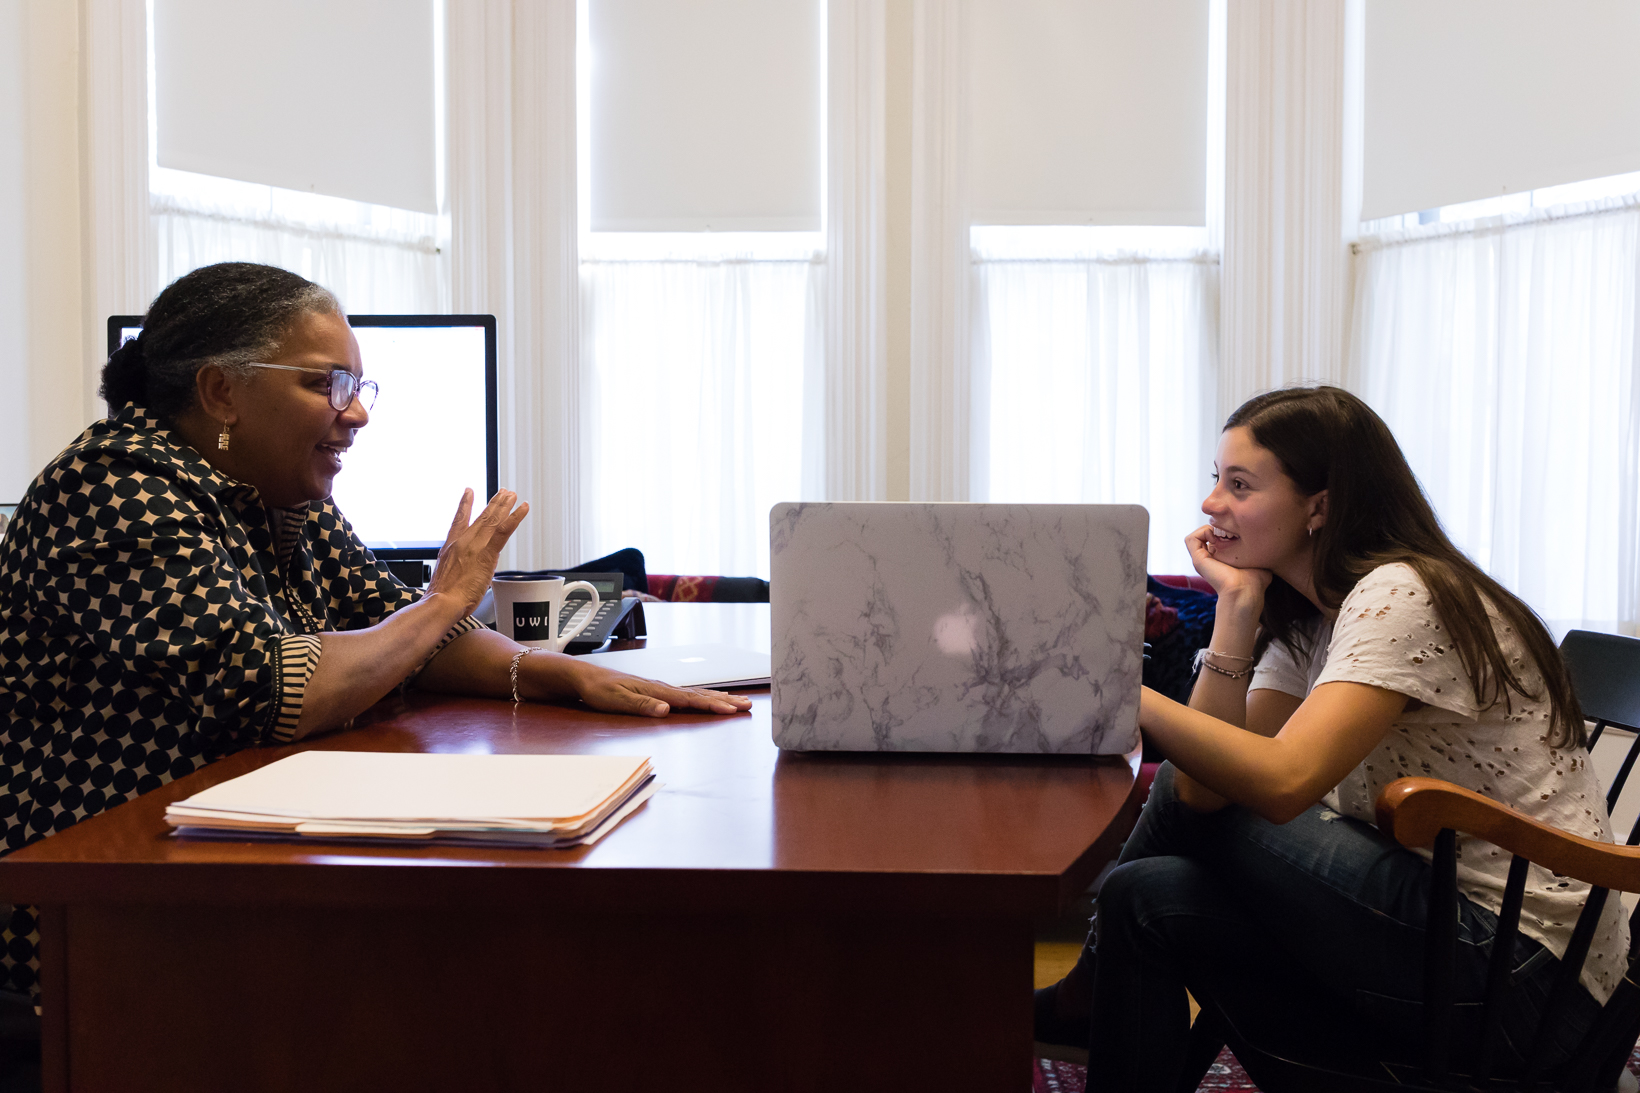 A student receives a one on one advising session with a faculty member.